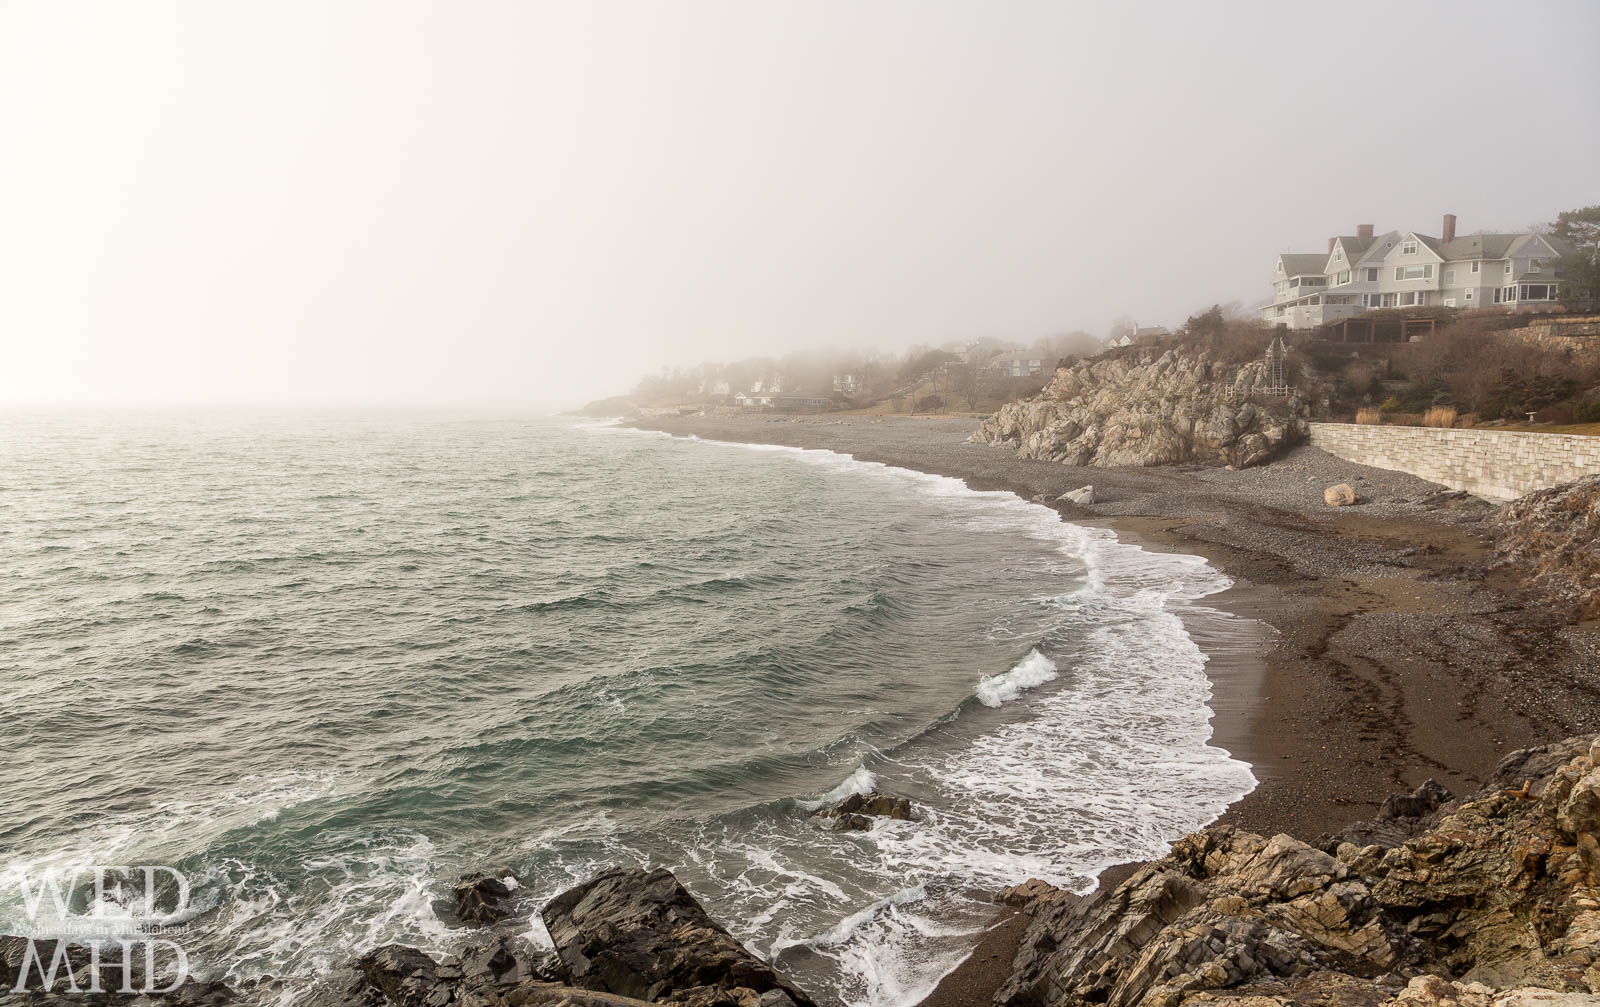 A view of the coastline in the fog along Marblehead Neck as seen from Castle Rock on a beautiful February morning. Perfect wave form formed along the beach.